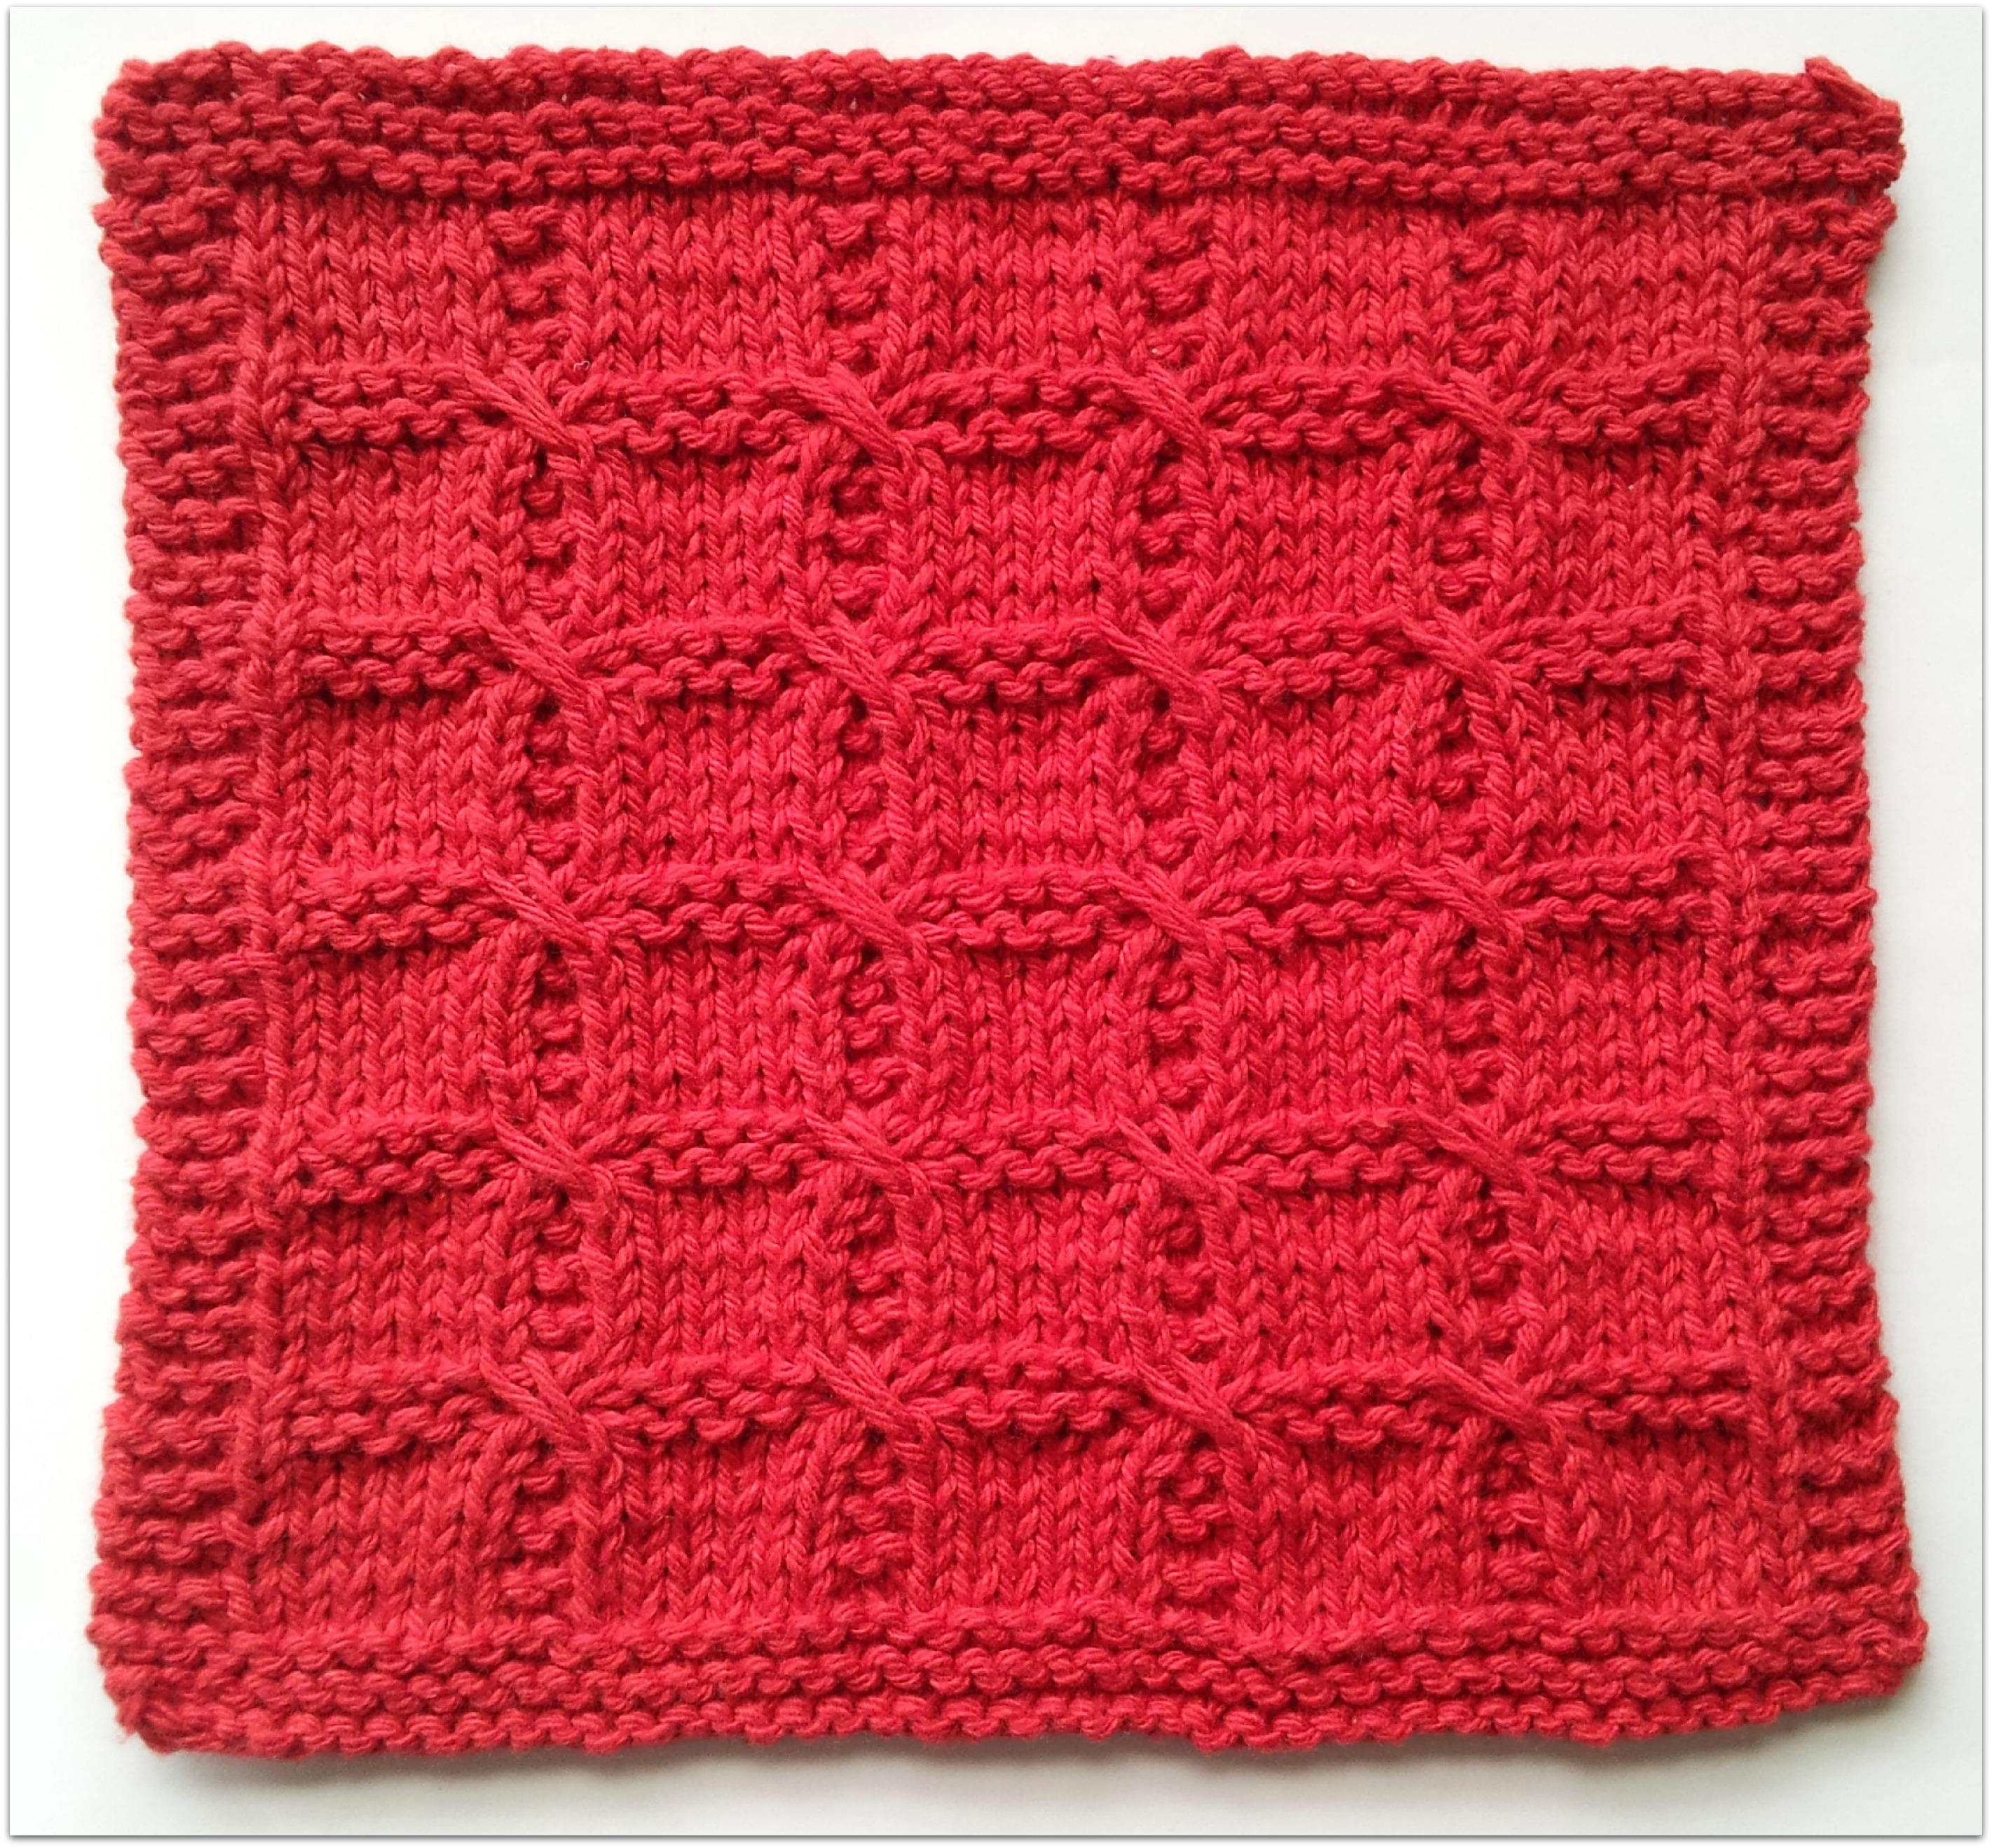 Washcloth Knitting Pattern Free Learn A Stitch Share The Love Knitalong Seriesfree Washcloth